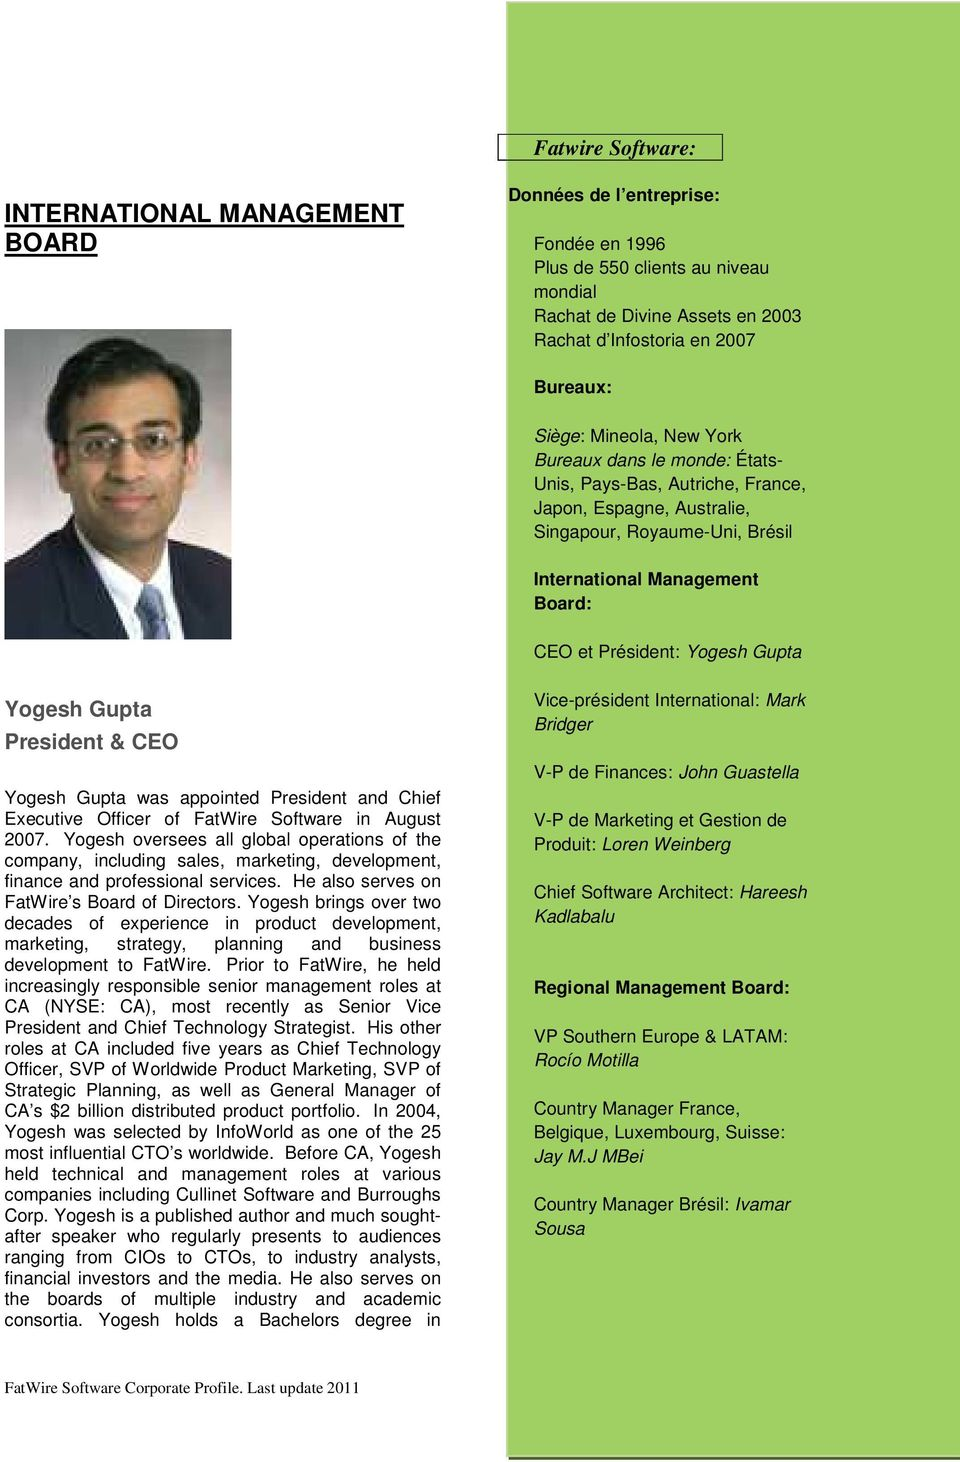 Yogesh oversees all global operations of the company, including sales, marketing, development, finance and professional services. He also serves on FatWire s Board of Directors.